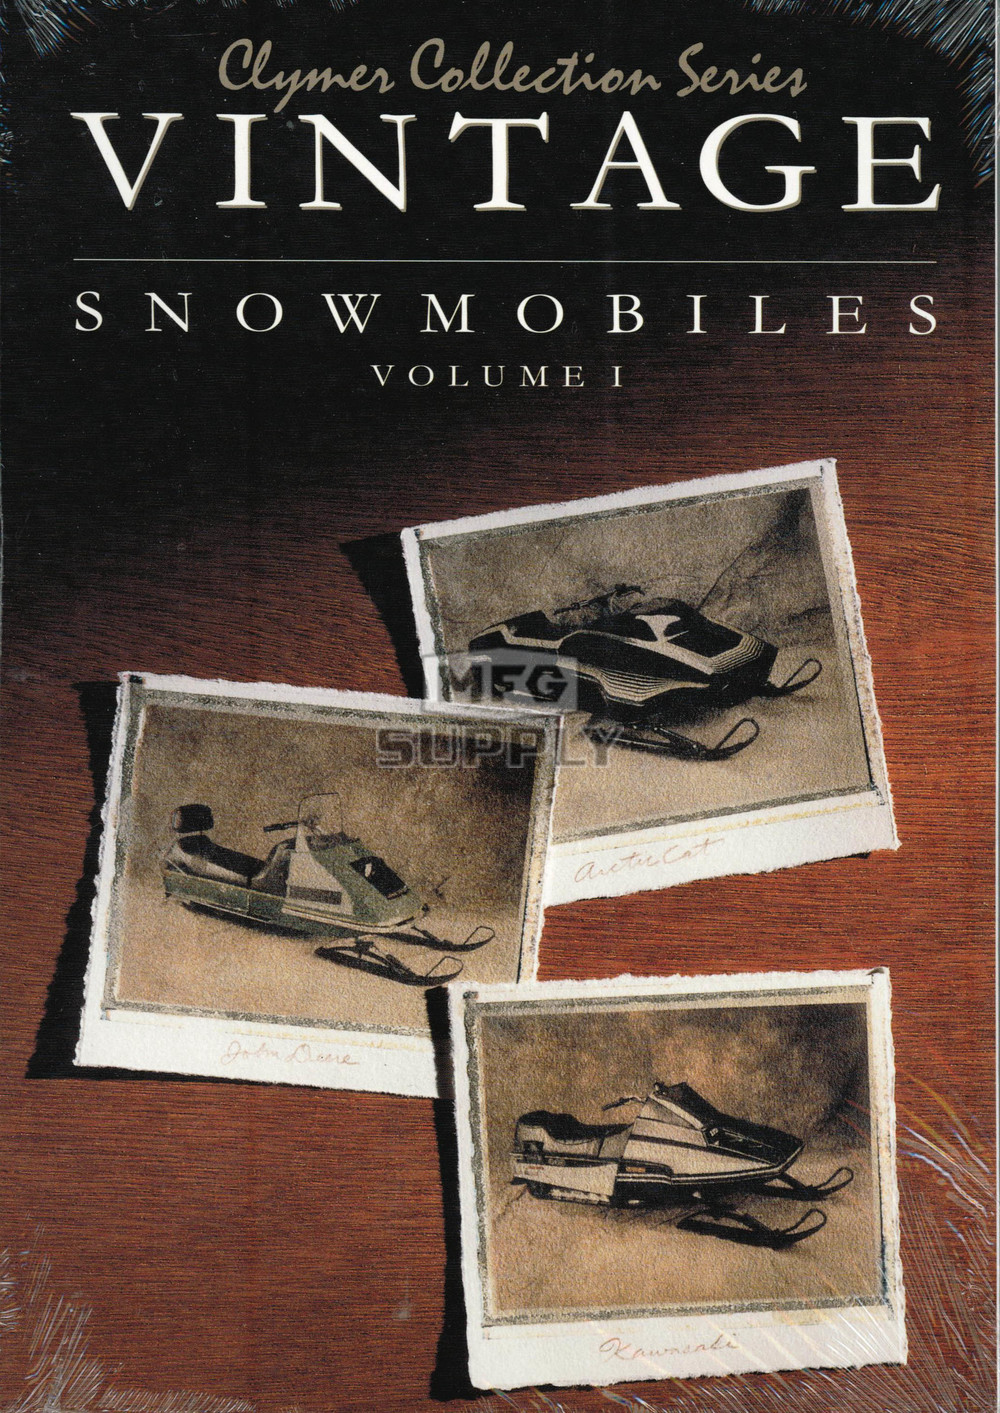 CS820 - Vintage Snowmobile Manual. 74-79 Arctic Cat, 72-77 John